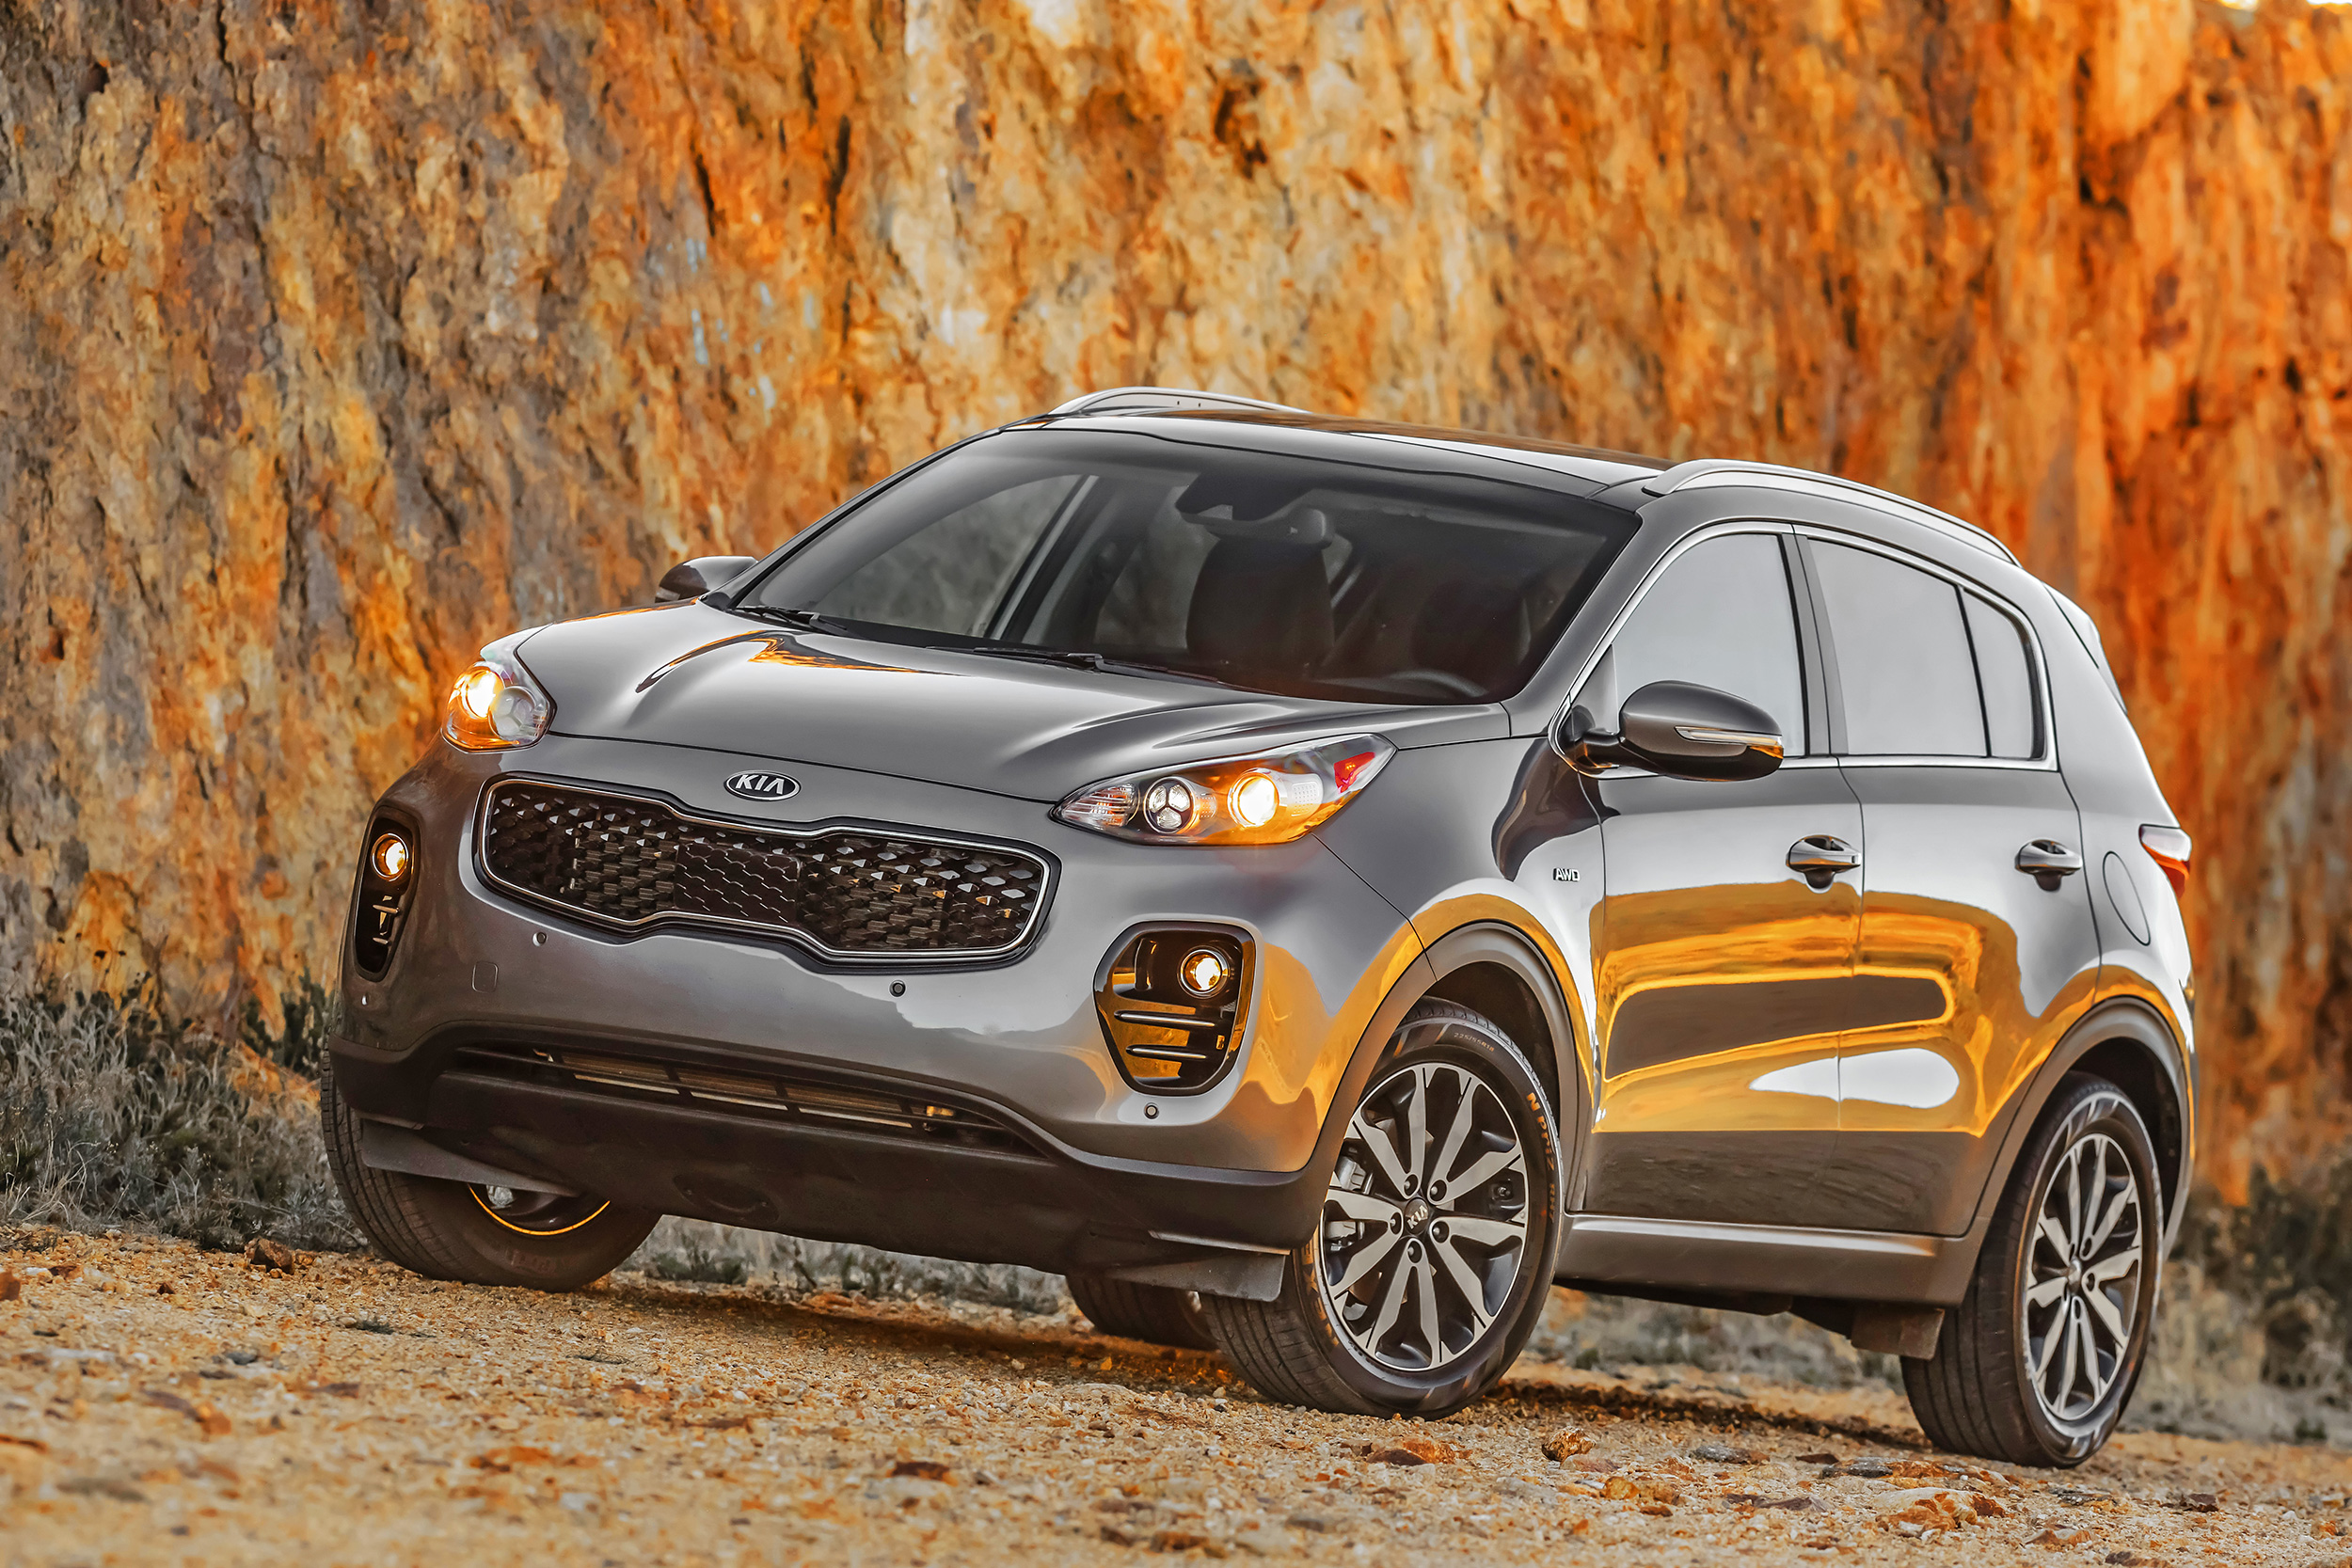 2018 Kia Sportage Specs And Features